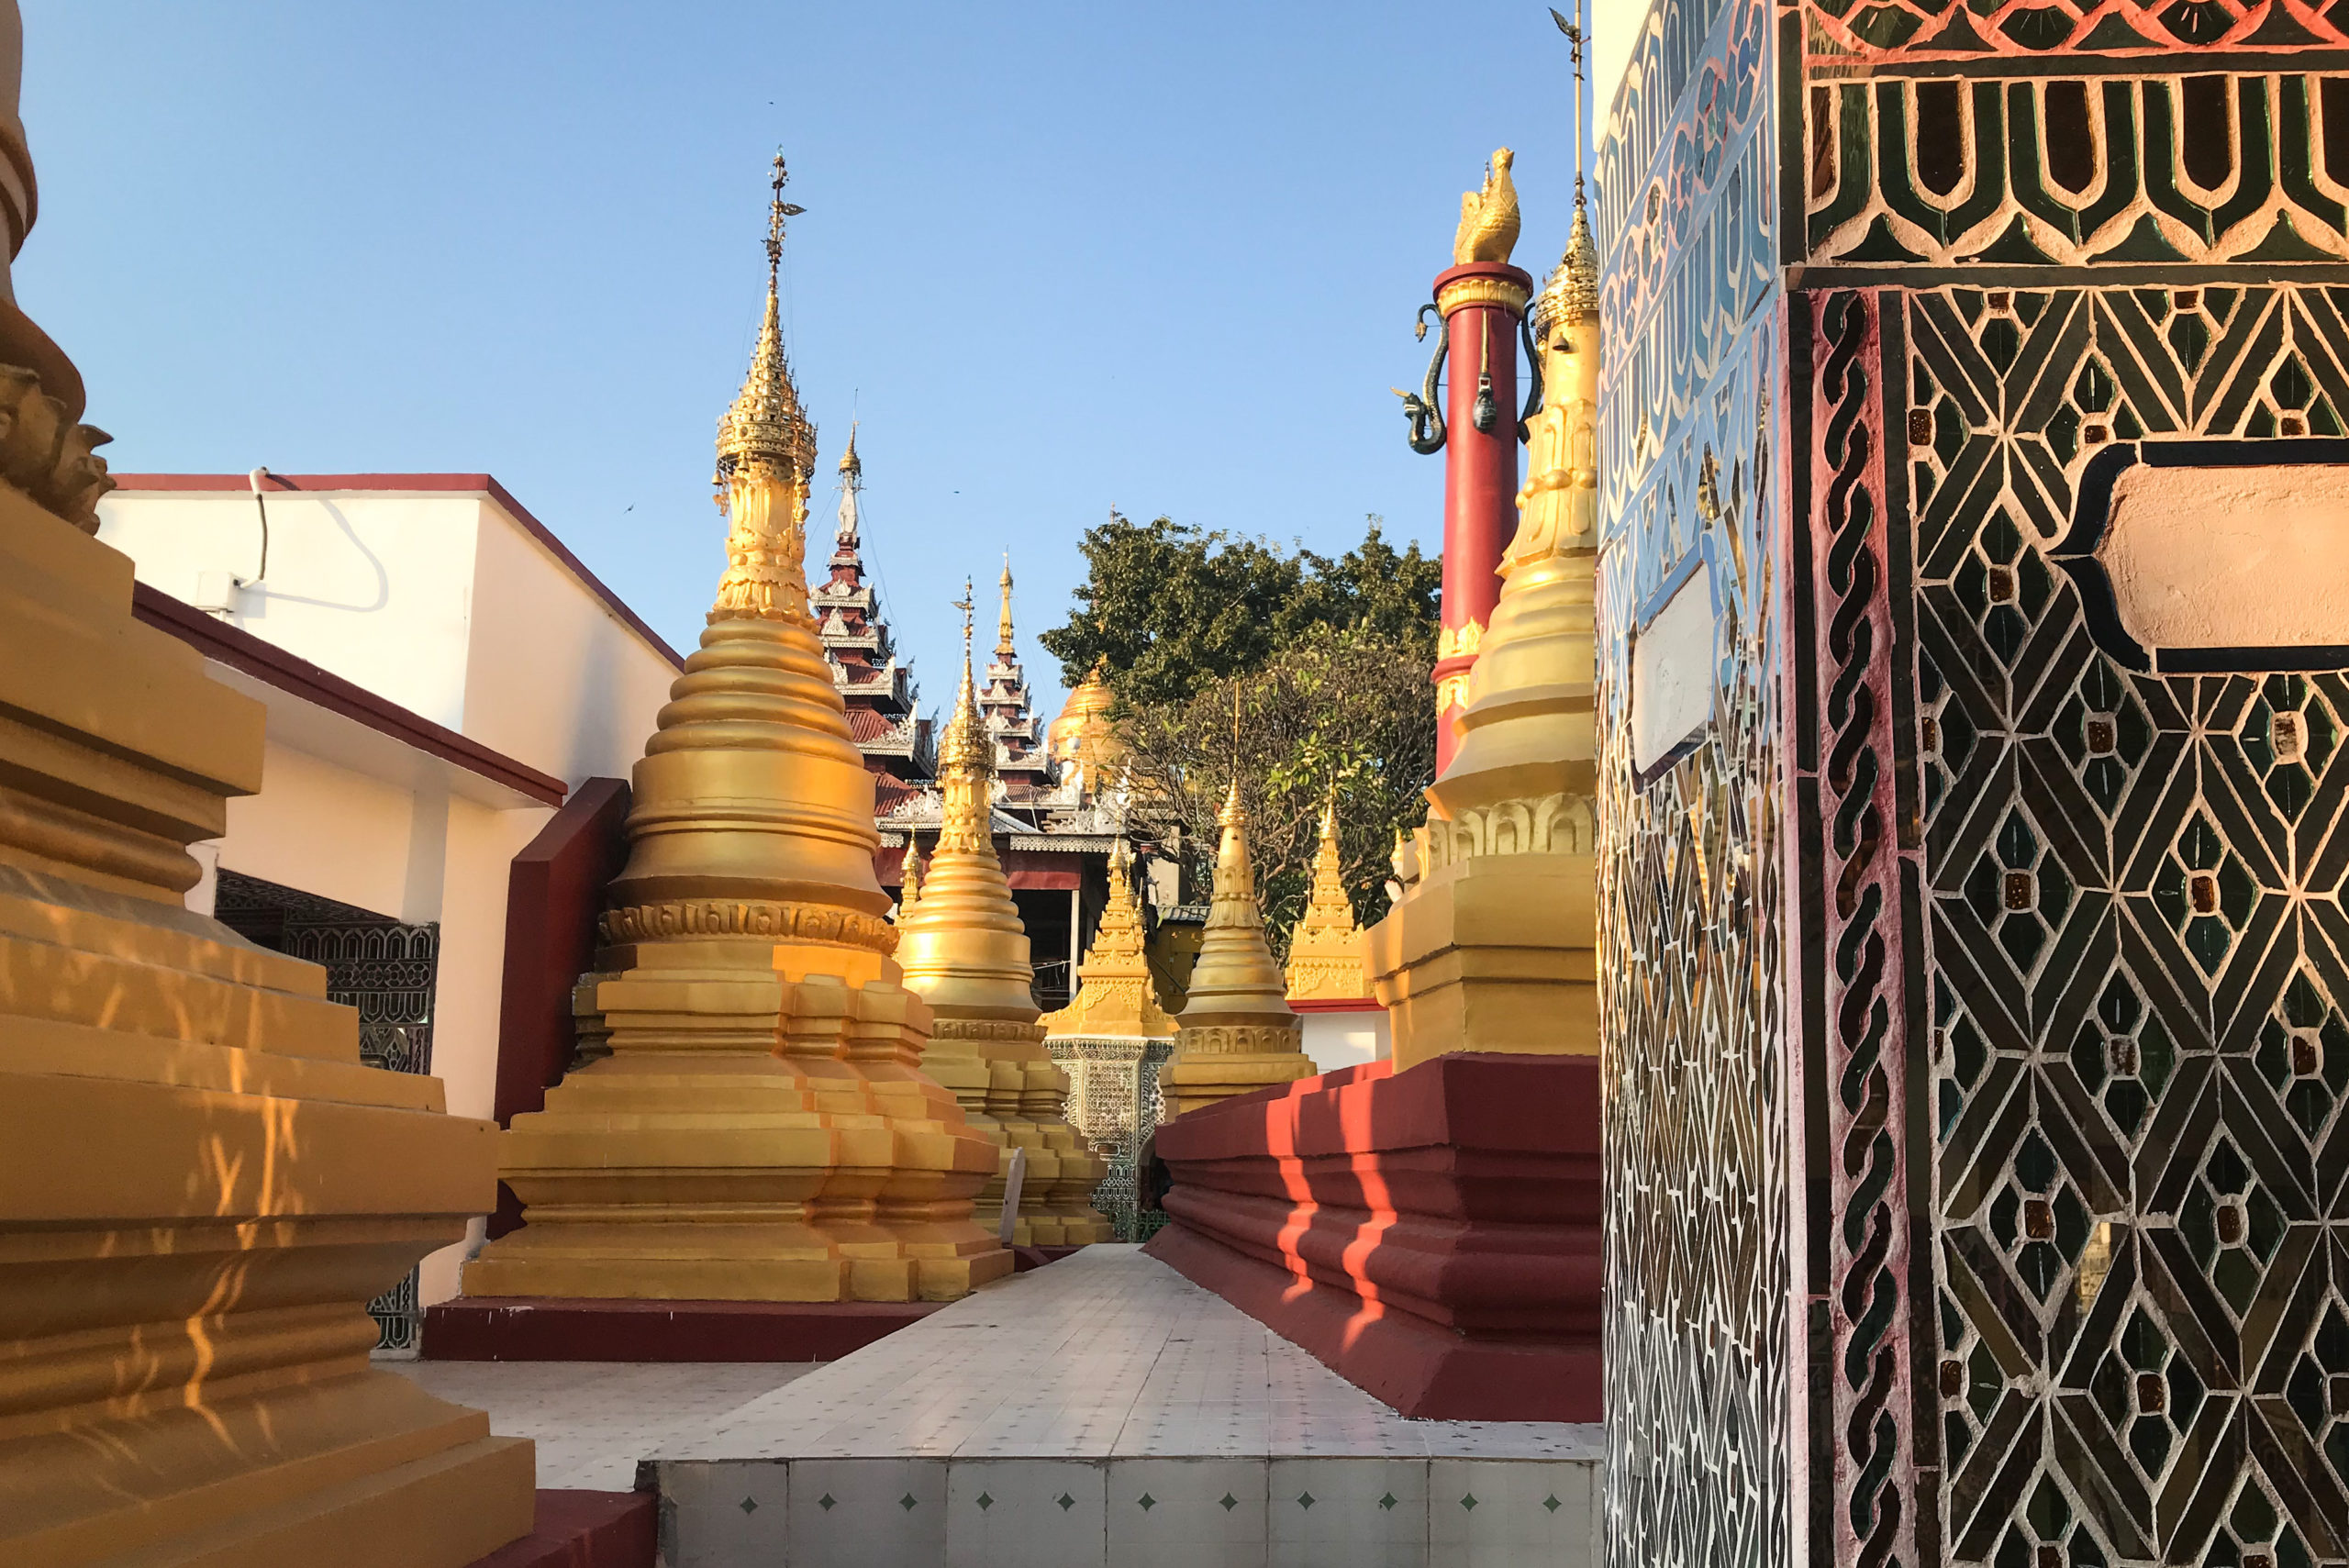 Mandalay Hill, Burma